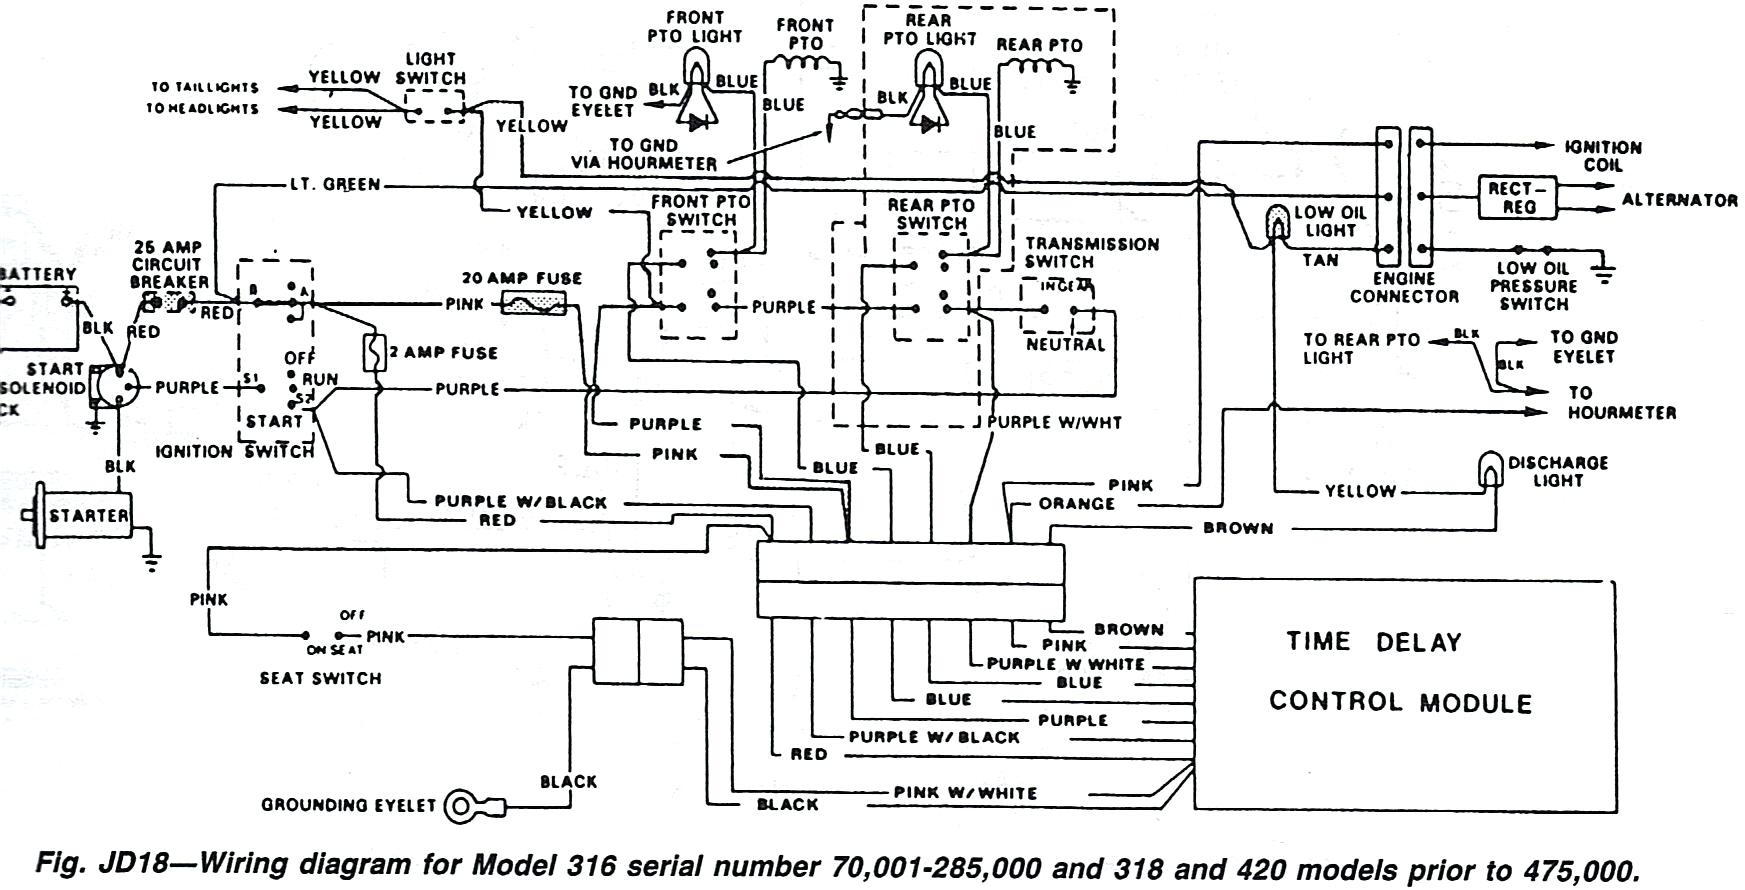 john deere 27d wiring harness diagram john deere l110 wiring diagram download #15